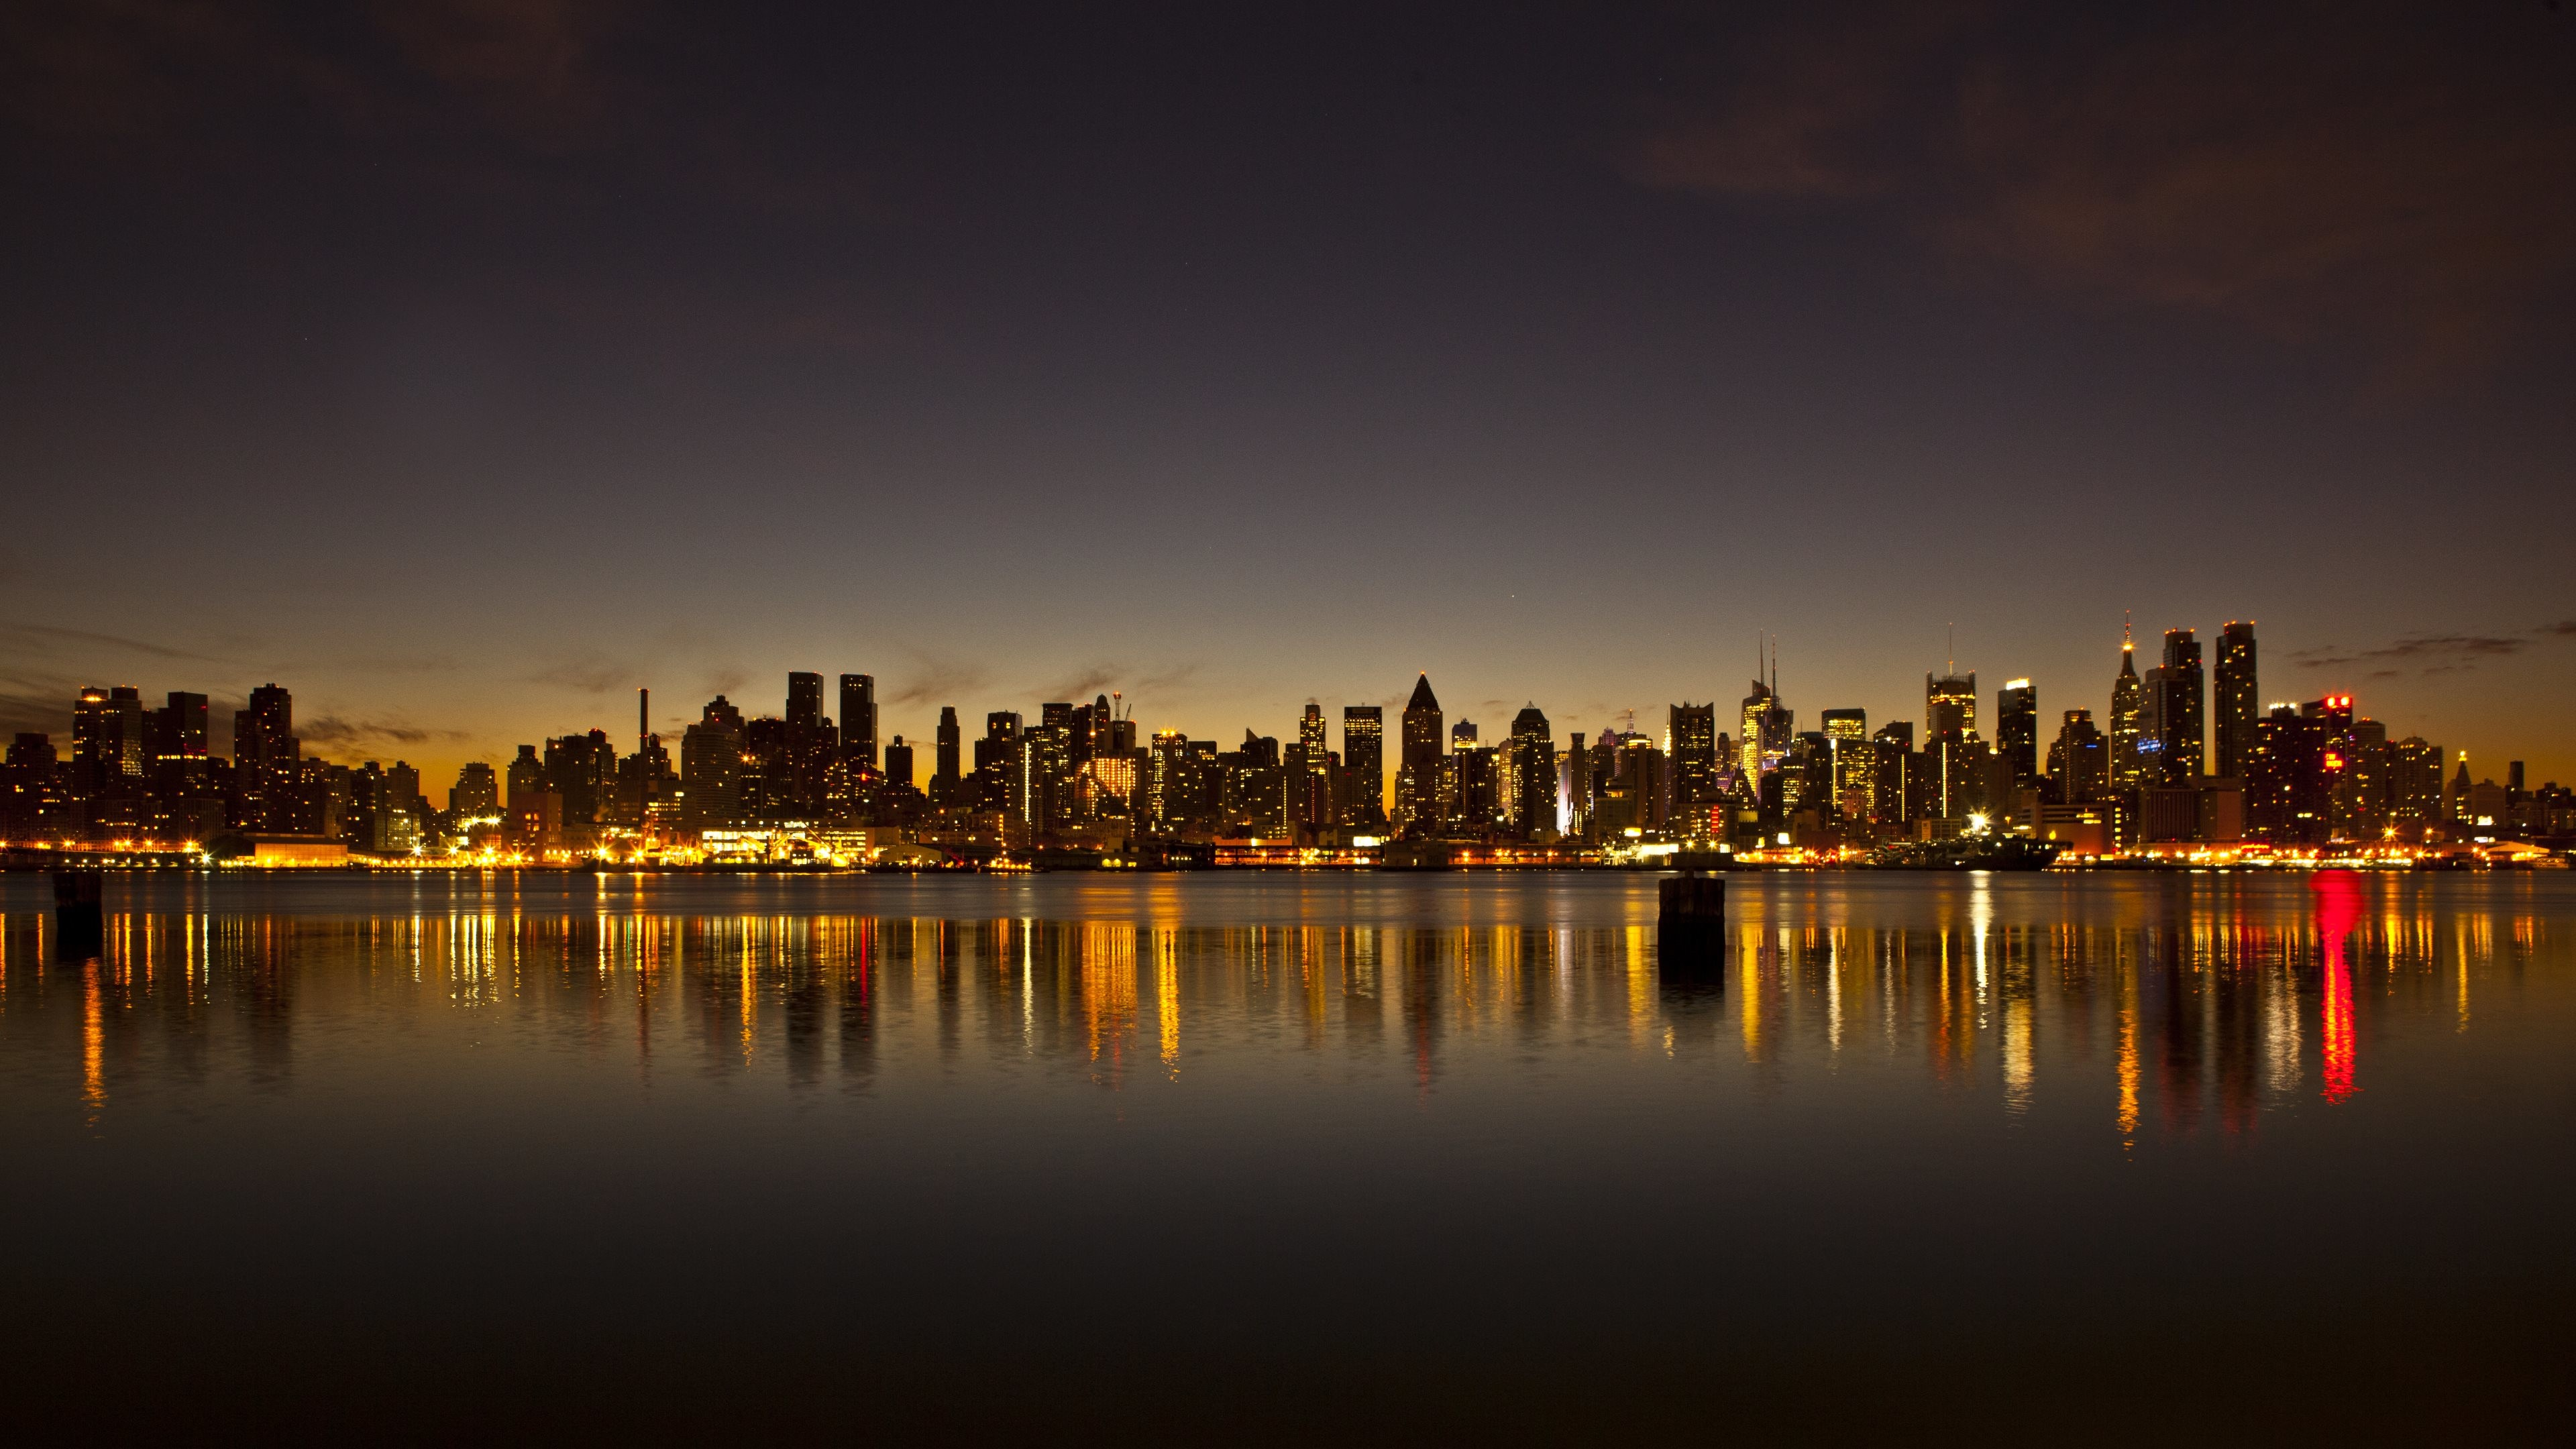 Detroit skyline wallpaper wallpapertag - New york skyline computer wallpaper ...